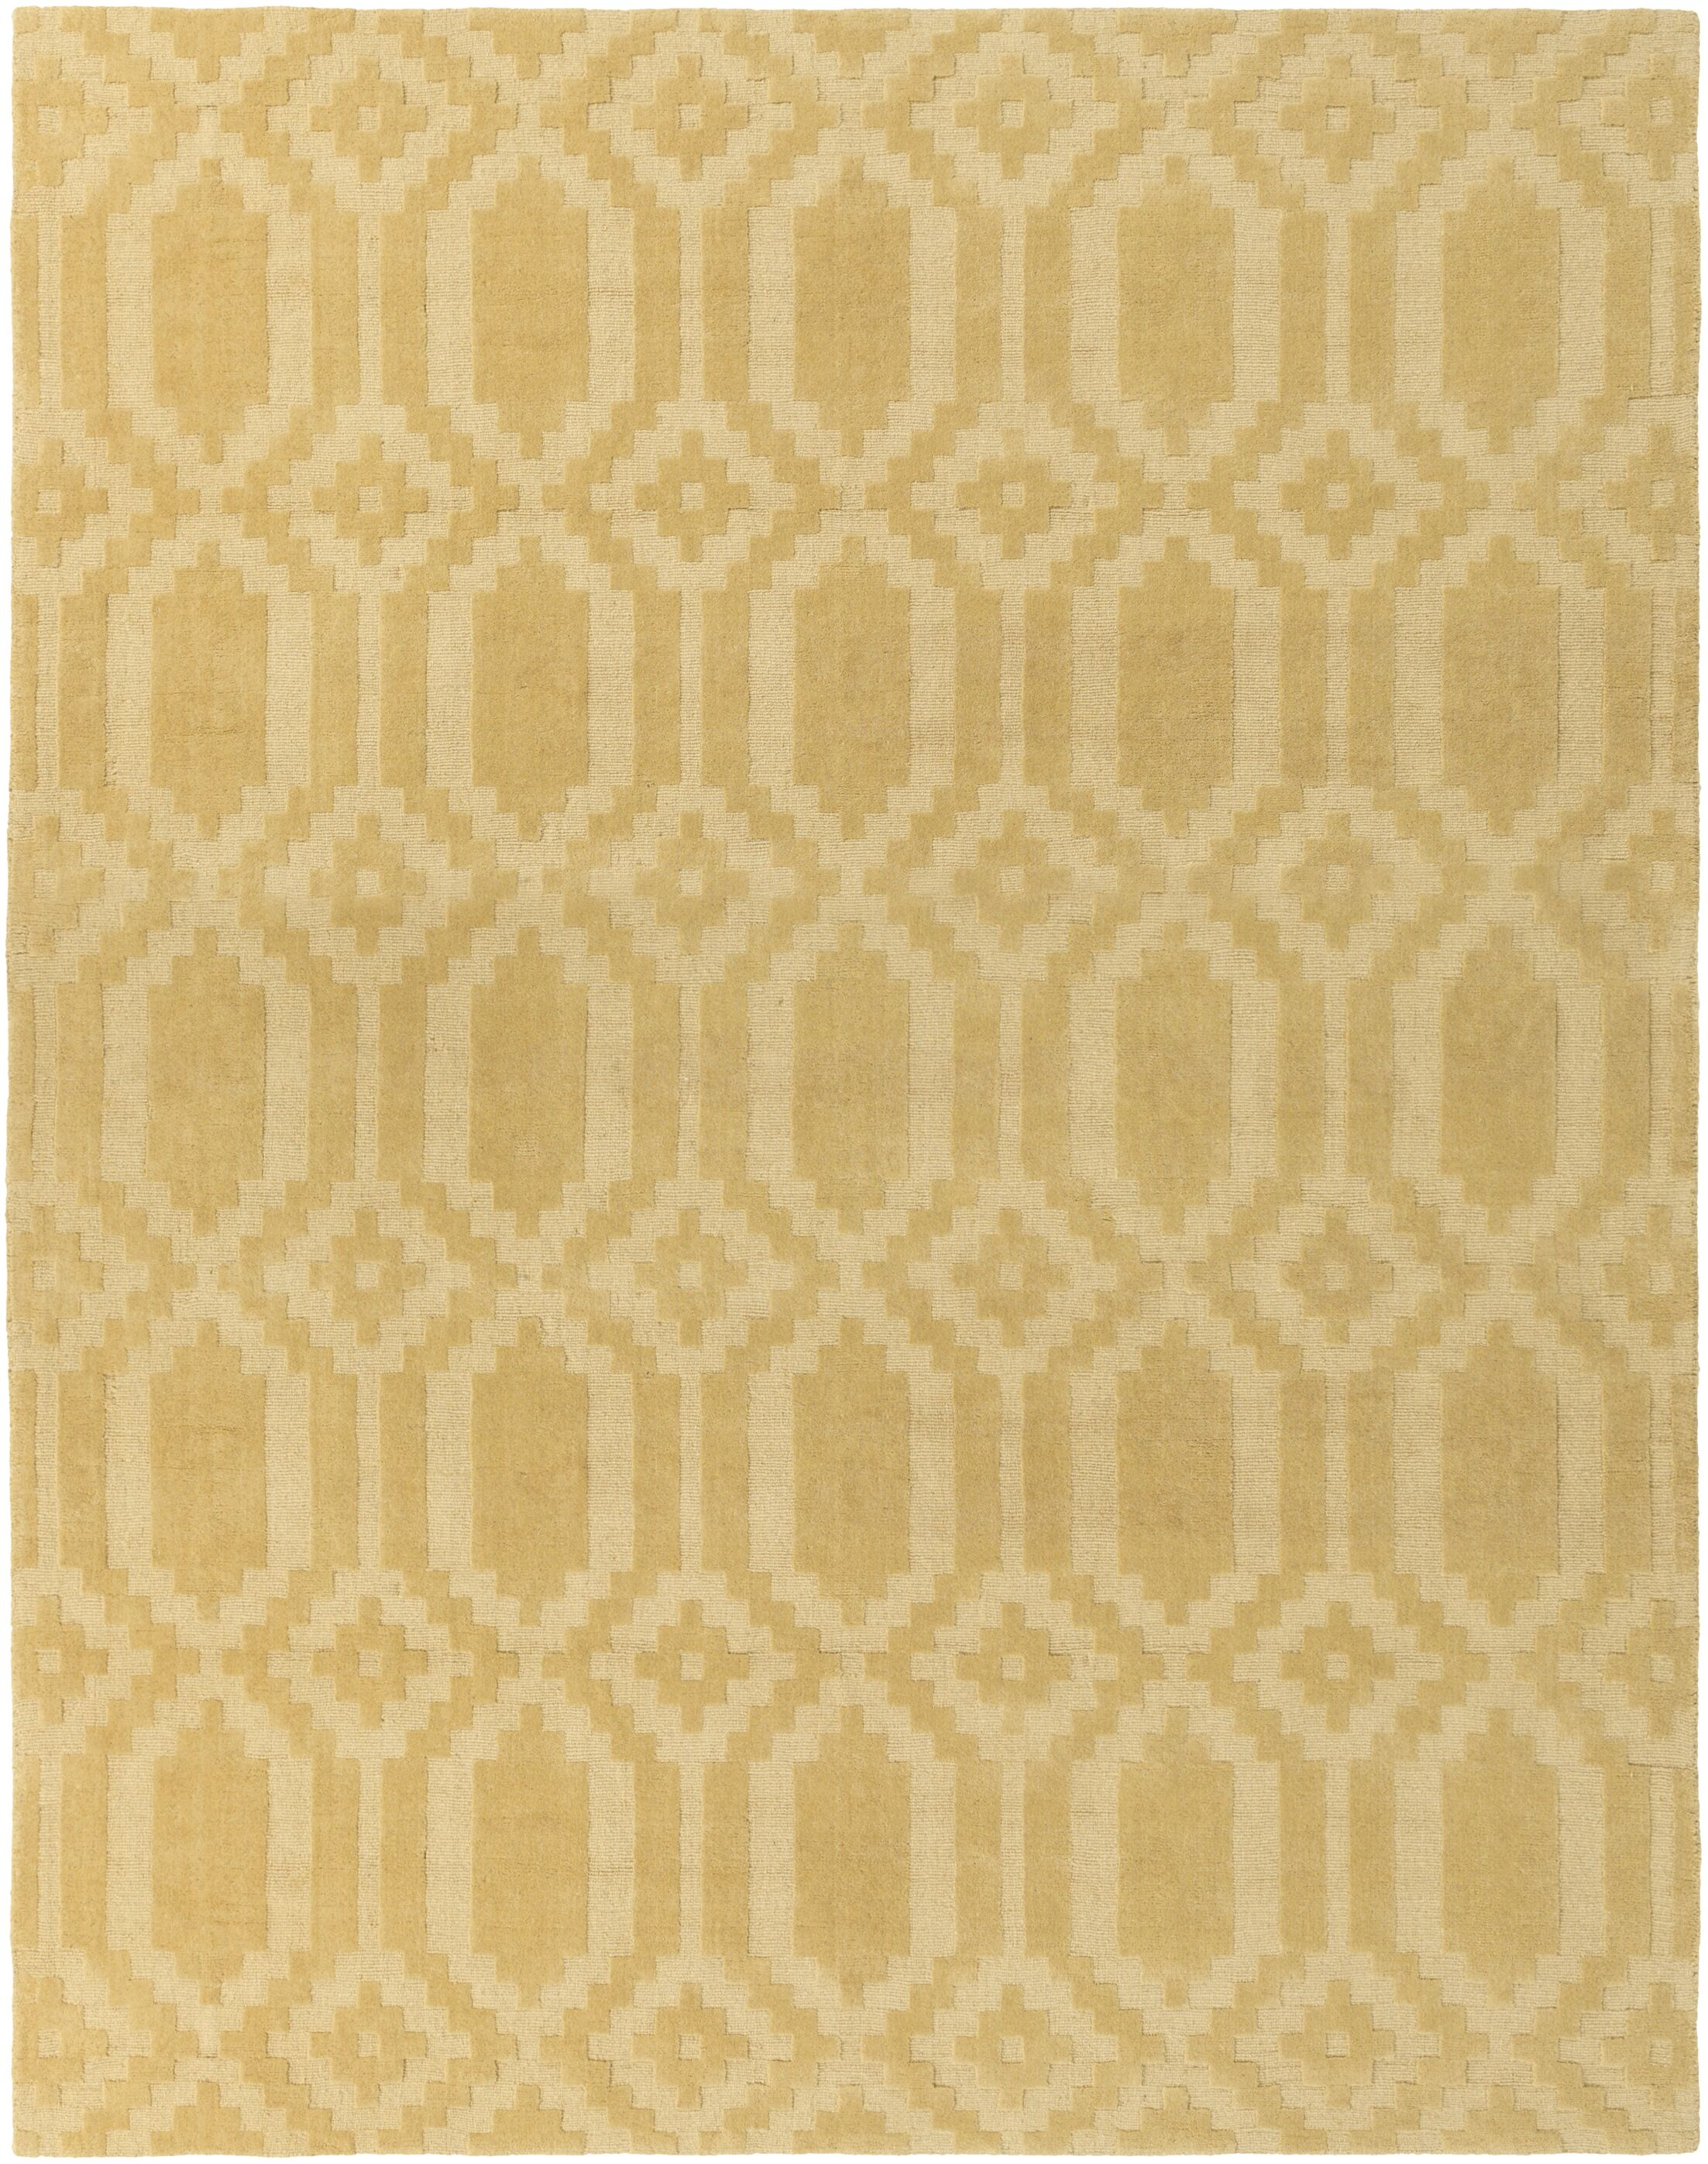 Brack Hand-Loomed Yellow Area Rug Rug Size: Rectangle 10' x 14'